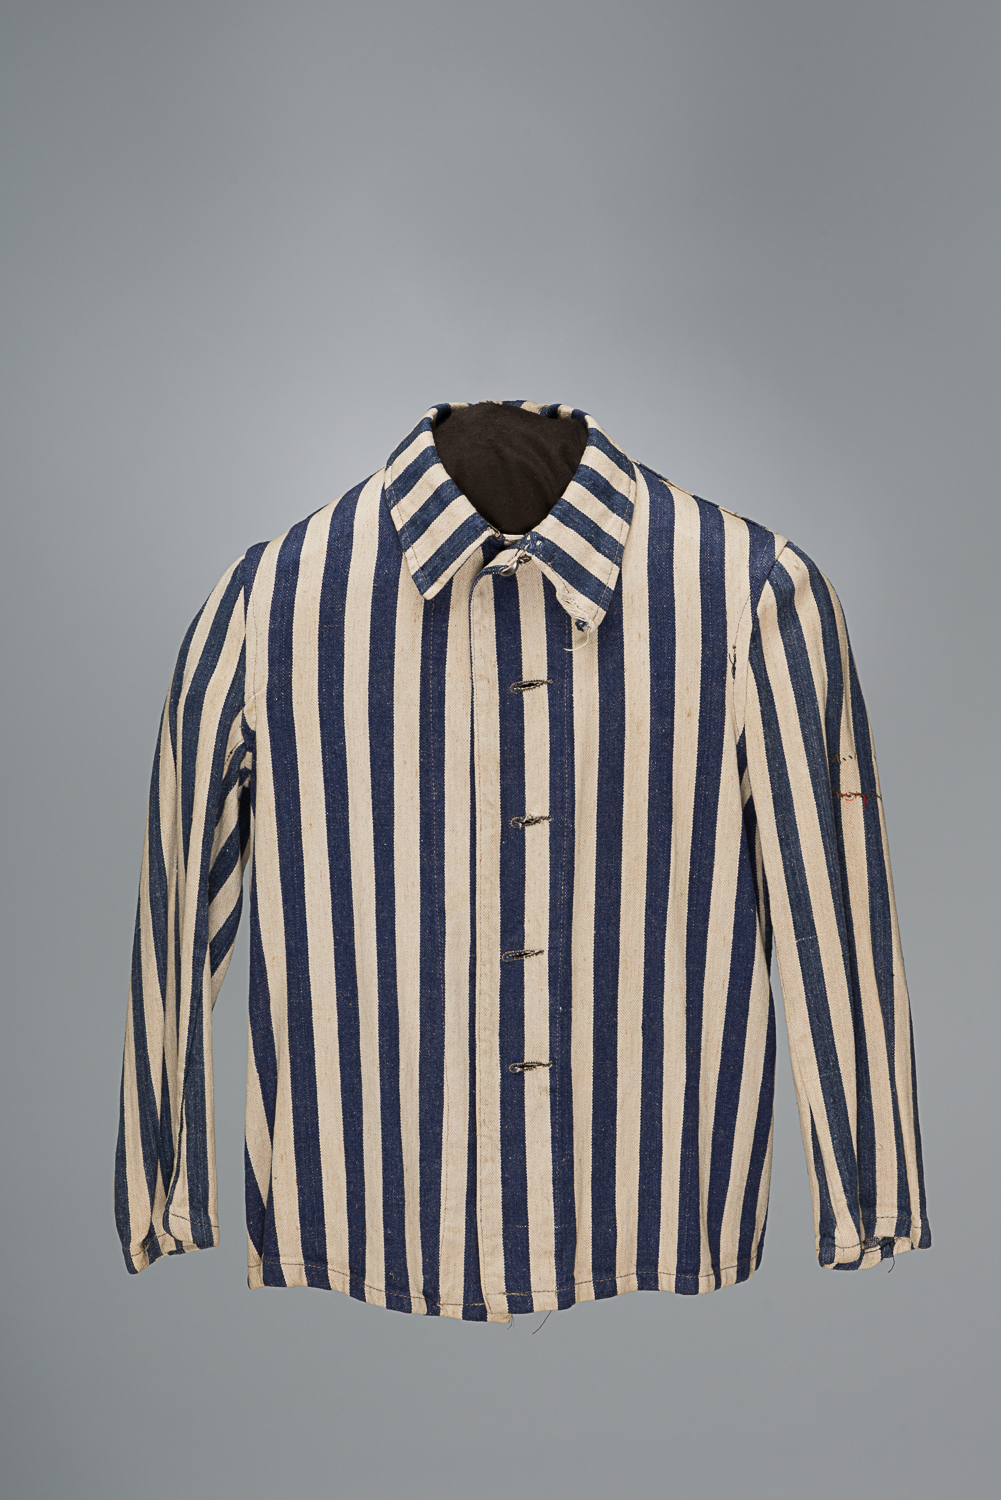 Upon arrival in the camps, women and men were forced to undress and their personal belongings were taken away. Prisoners selected for forced labour received a uniform like this one.